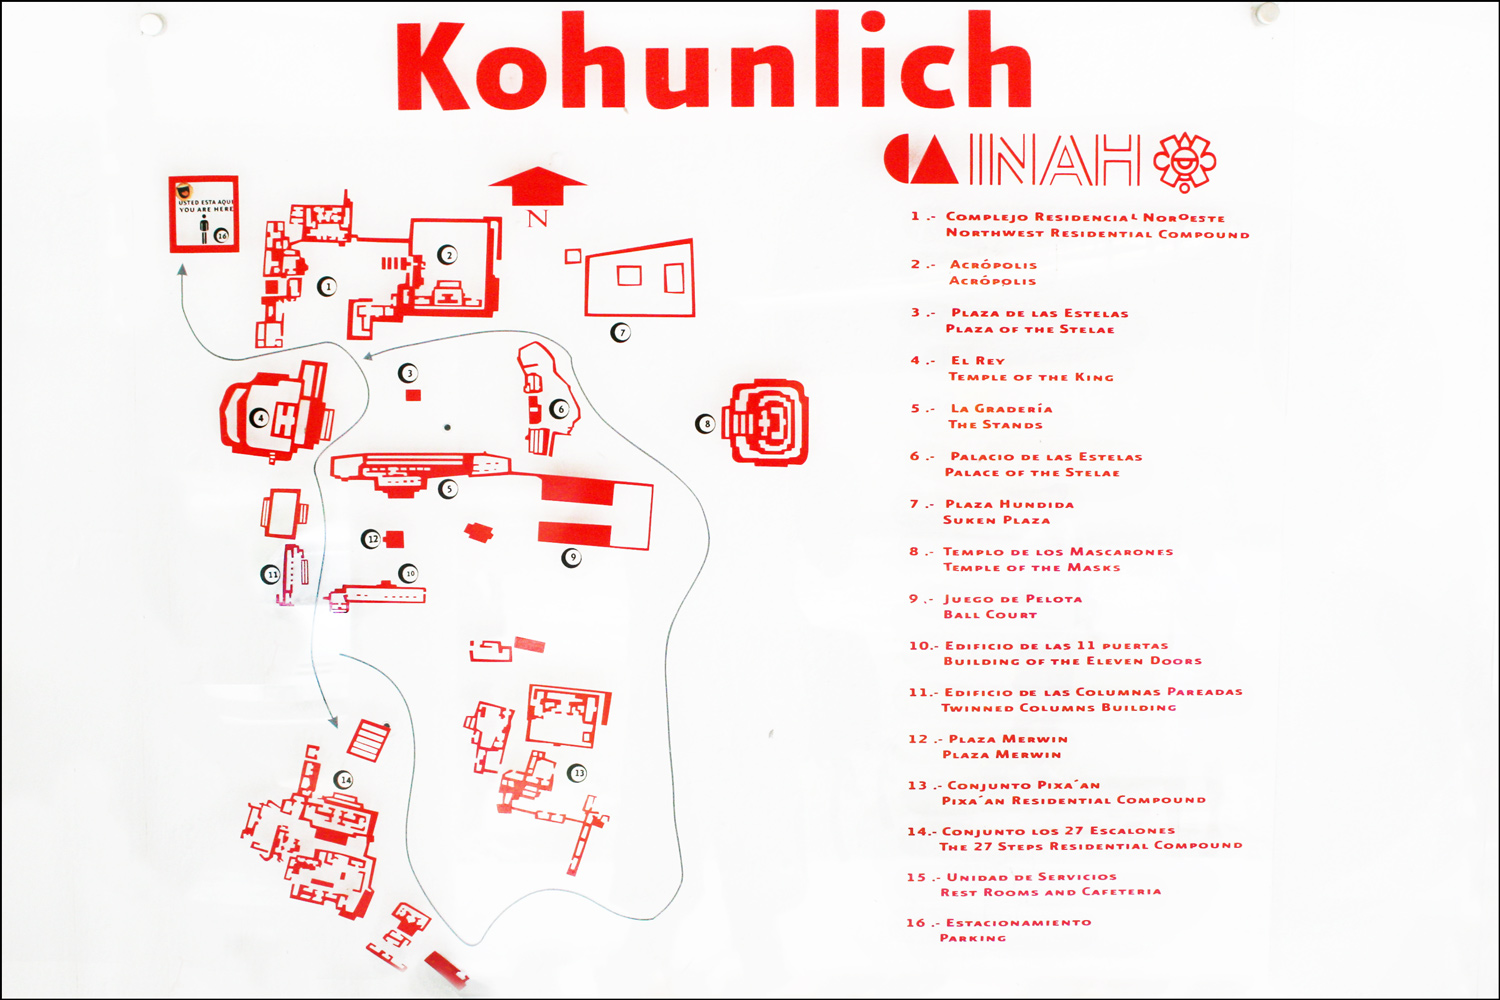 Map of Kohunlich